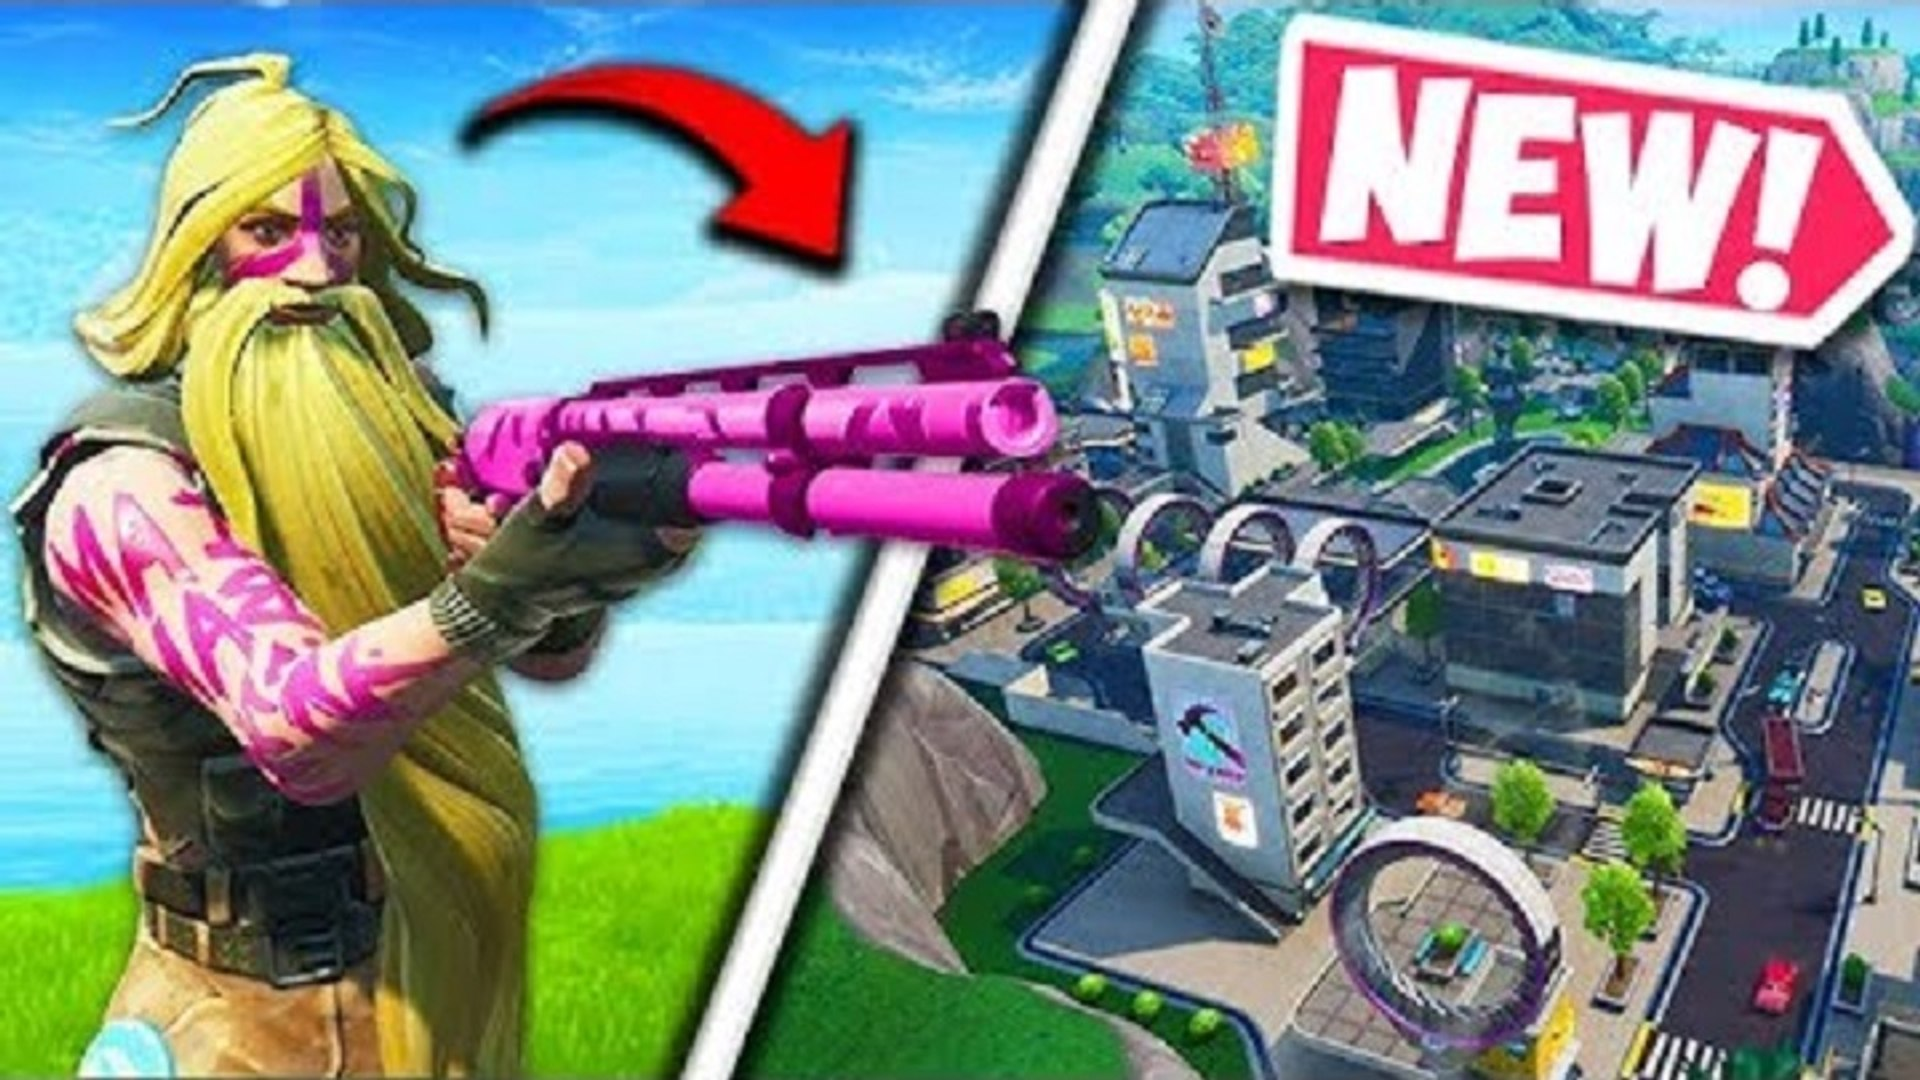 NEW COMBAT SHOTGUN & TILTED TOWERS! - Fortnite Funny Fails and WTF Moments!